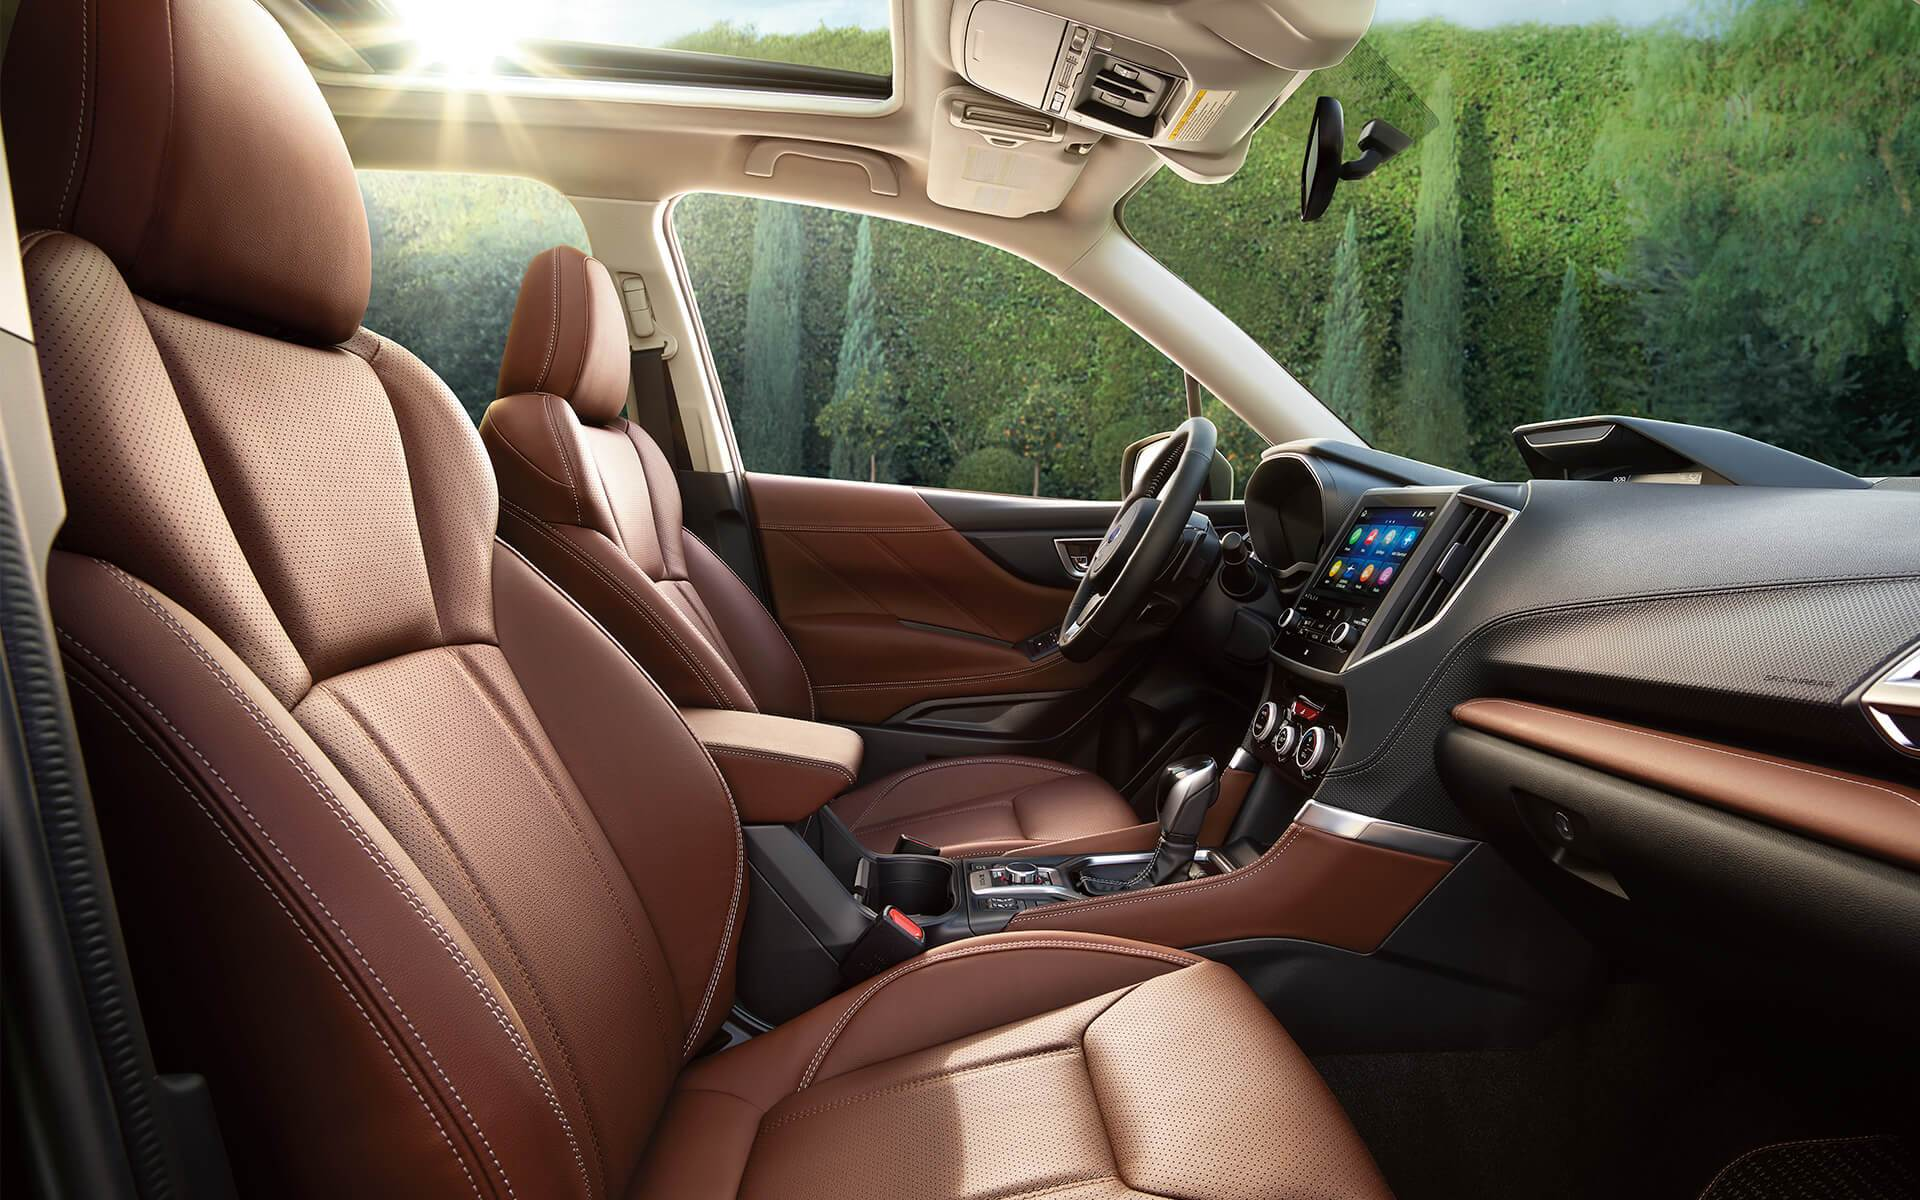 Subaru Image: Touring interior shown in Saddle Brown Leather